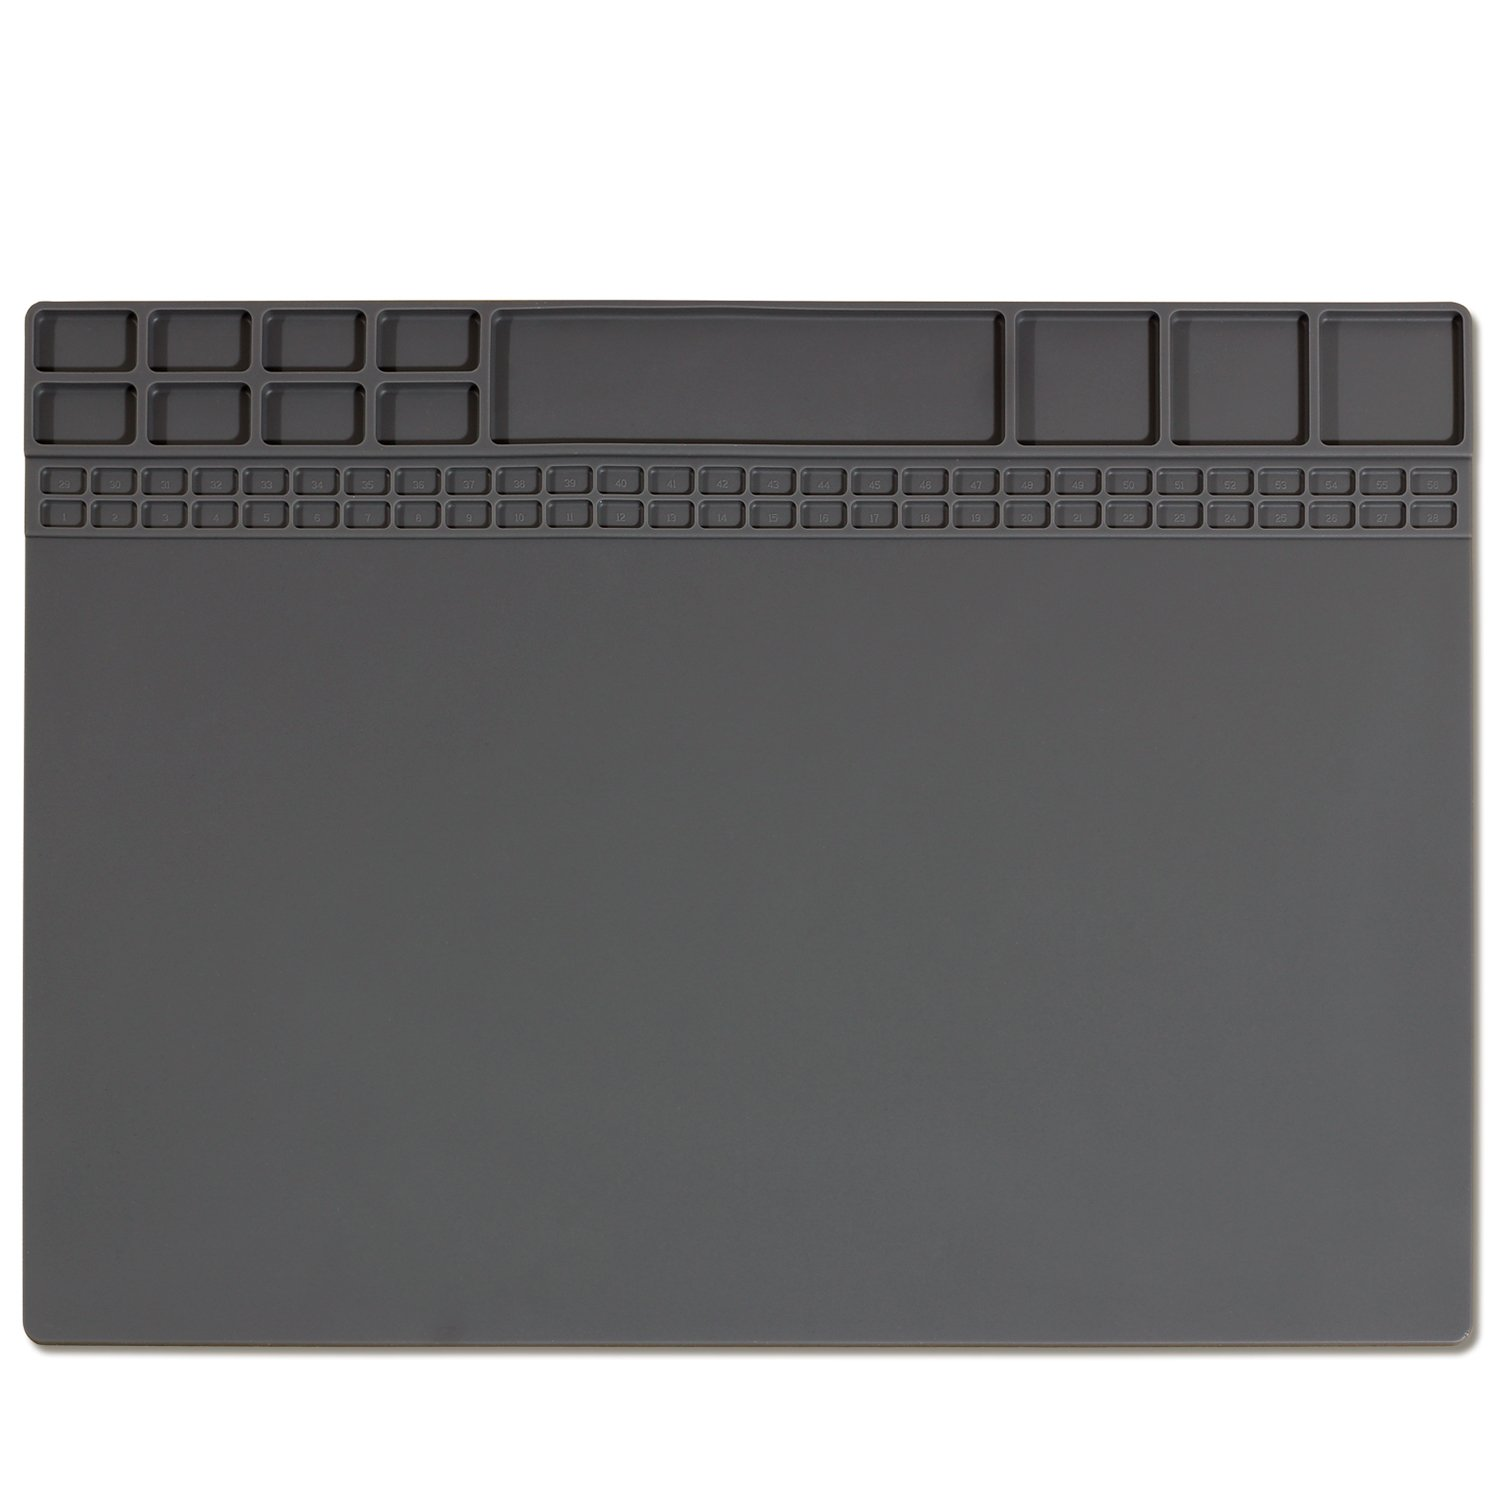 Silicone Soldering Mat Electronic Repair Mat for Laptop, Watch, Computer, Cellphone - Solder Pad Heat Resistant 932°F for BGA Station Gun Iron 15.9'' x 12''